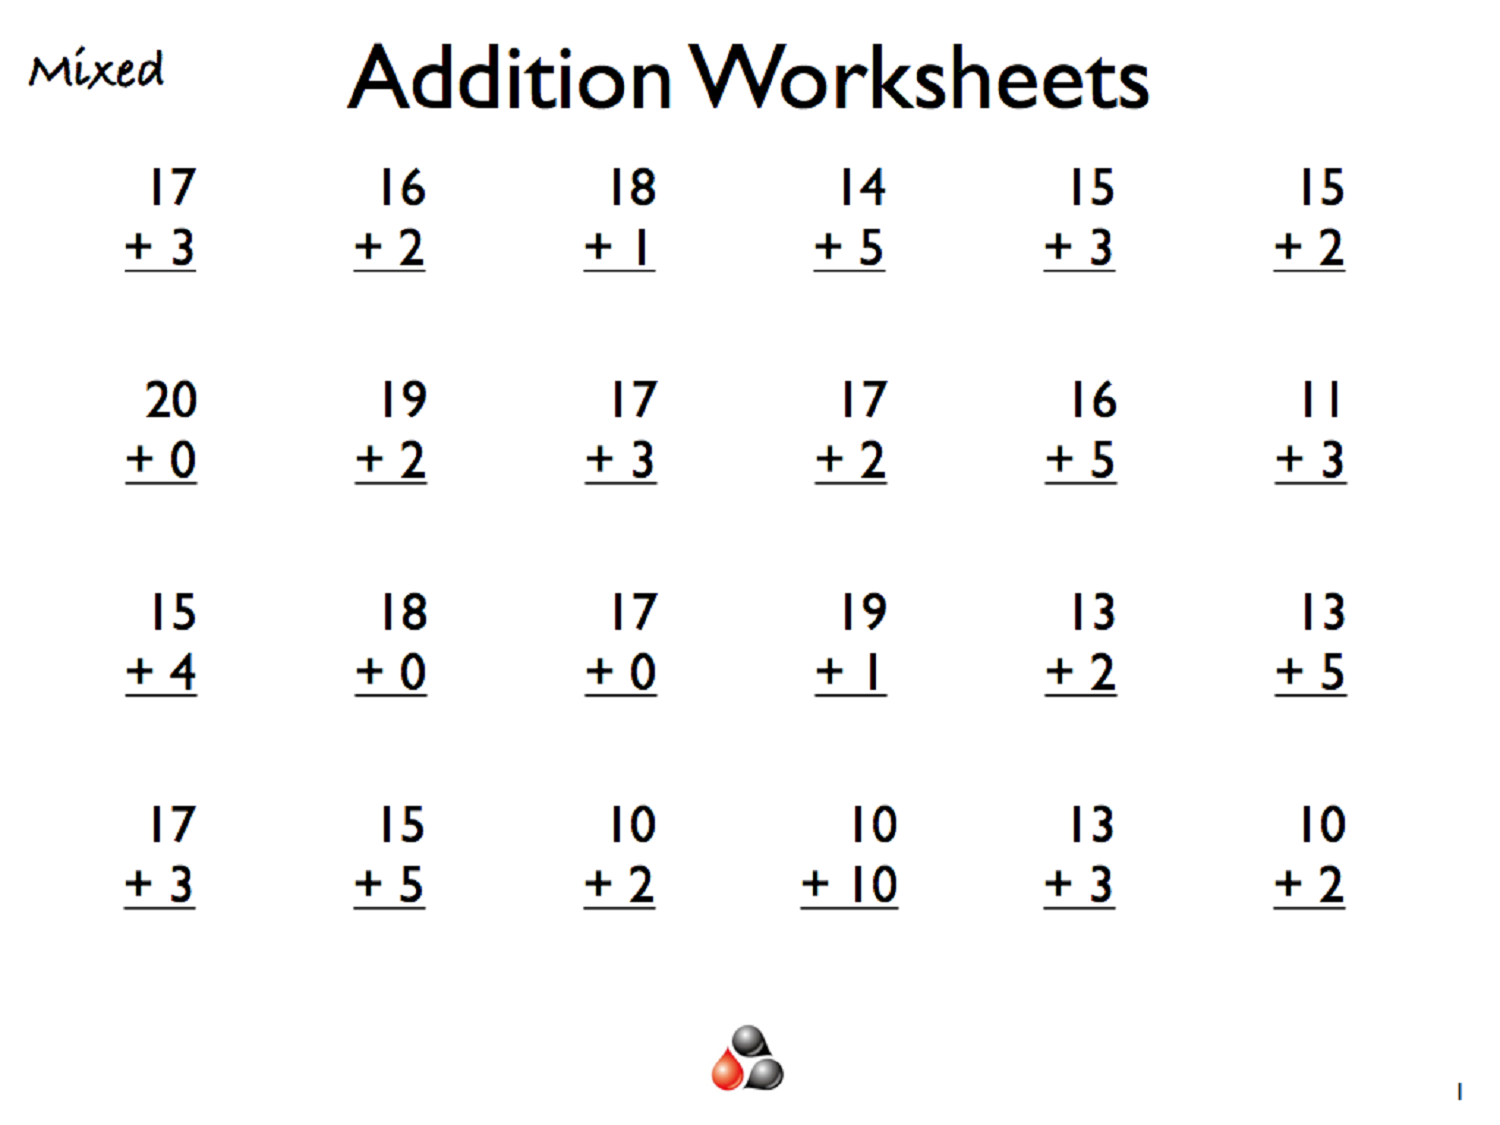 Addition For Worksheets For Grade 1 Is Helpful Educative Media ...